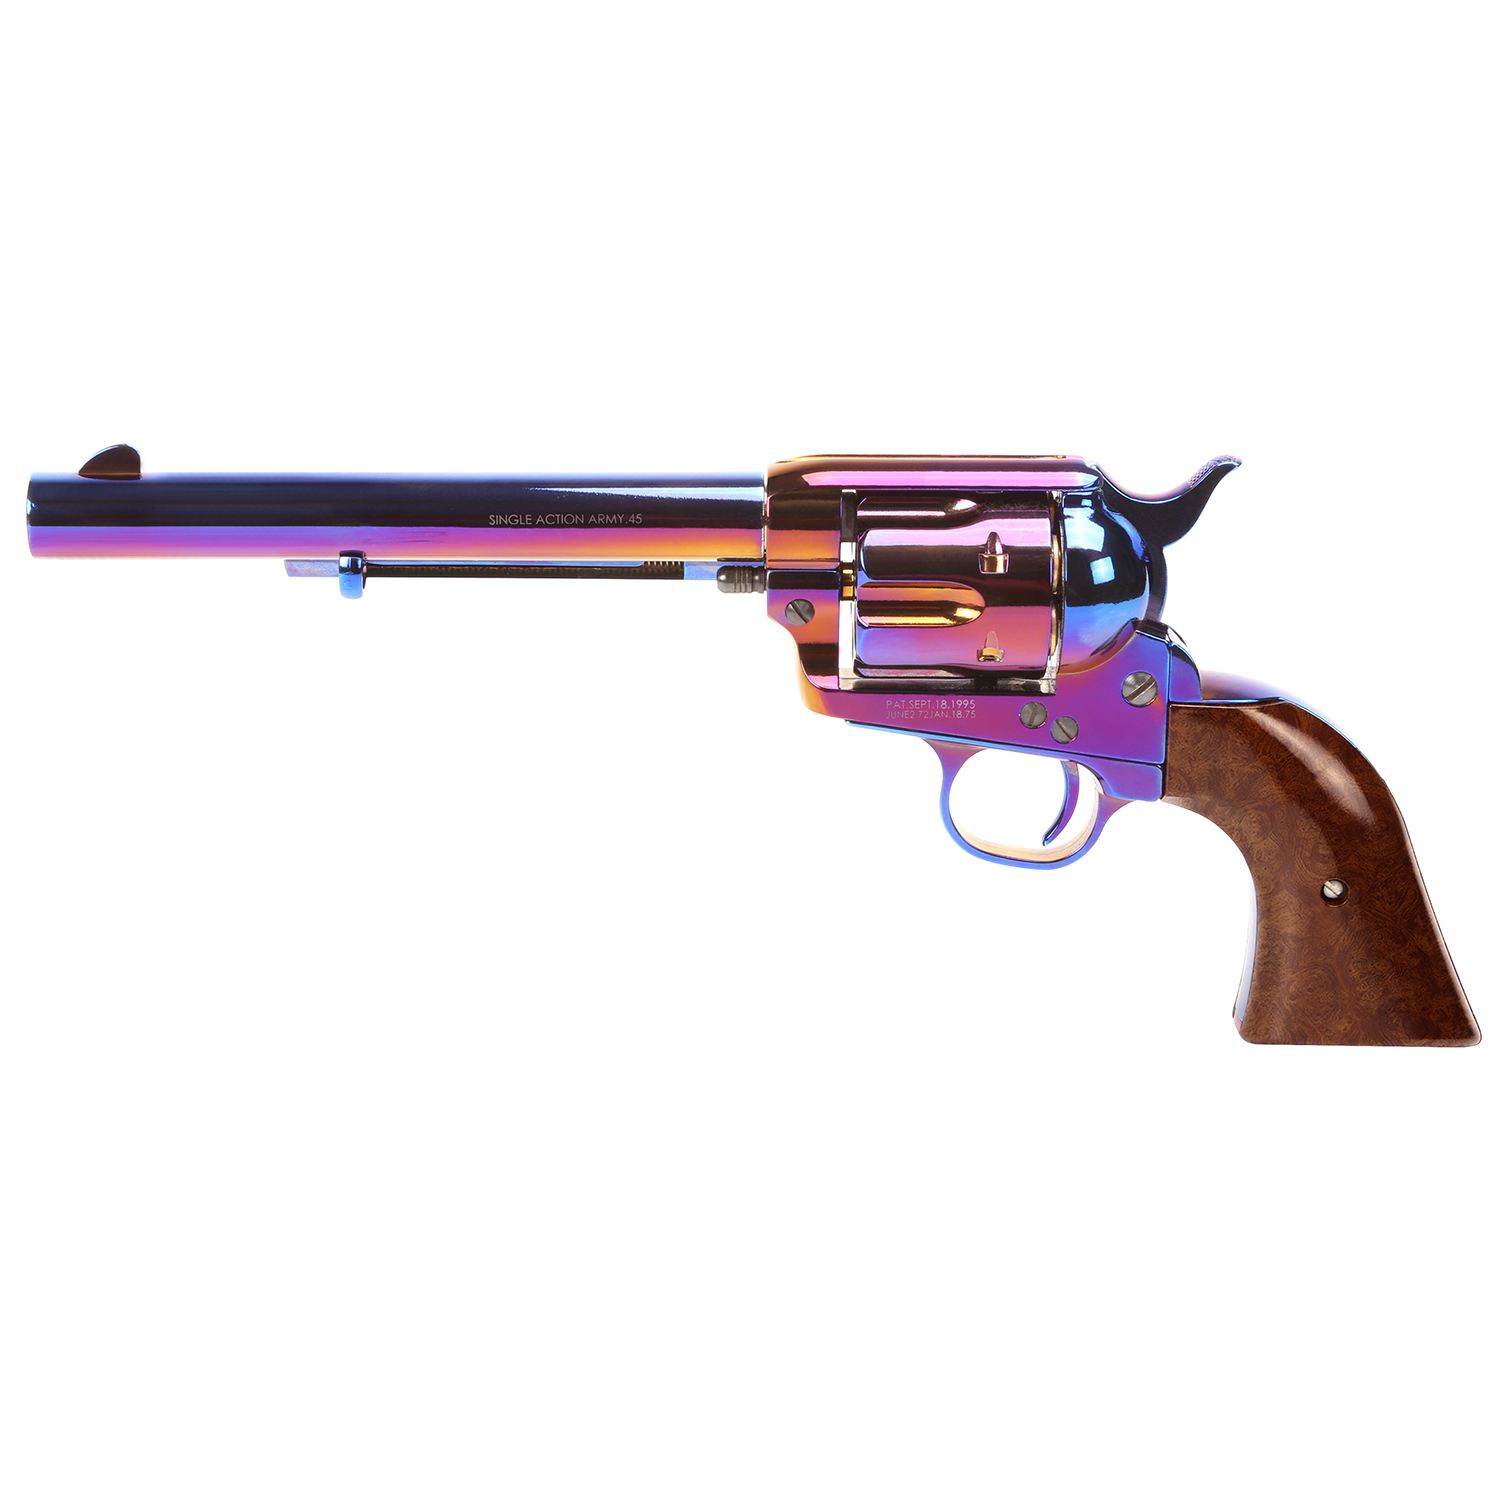 "King Arms SAA .45 Peacemaker Revolver M 6"" - Bluing Style"